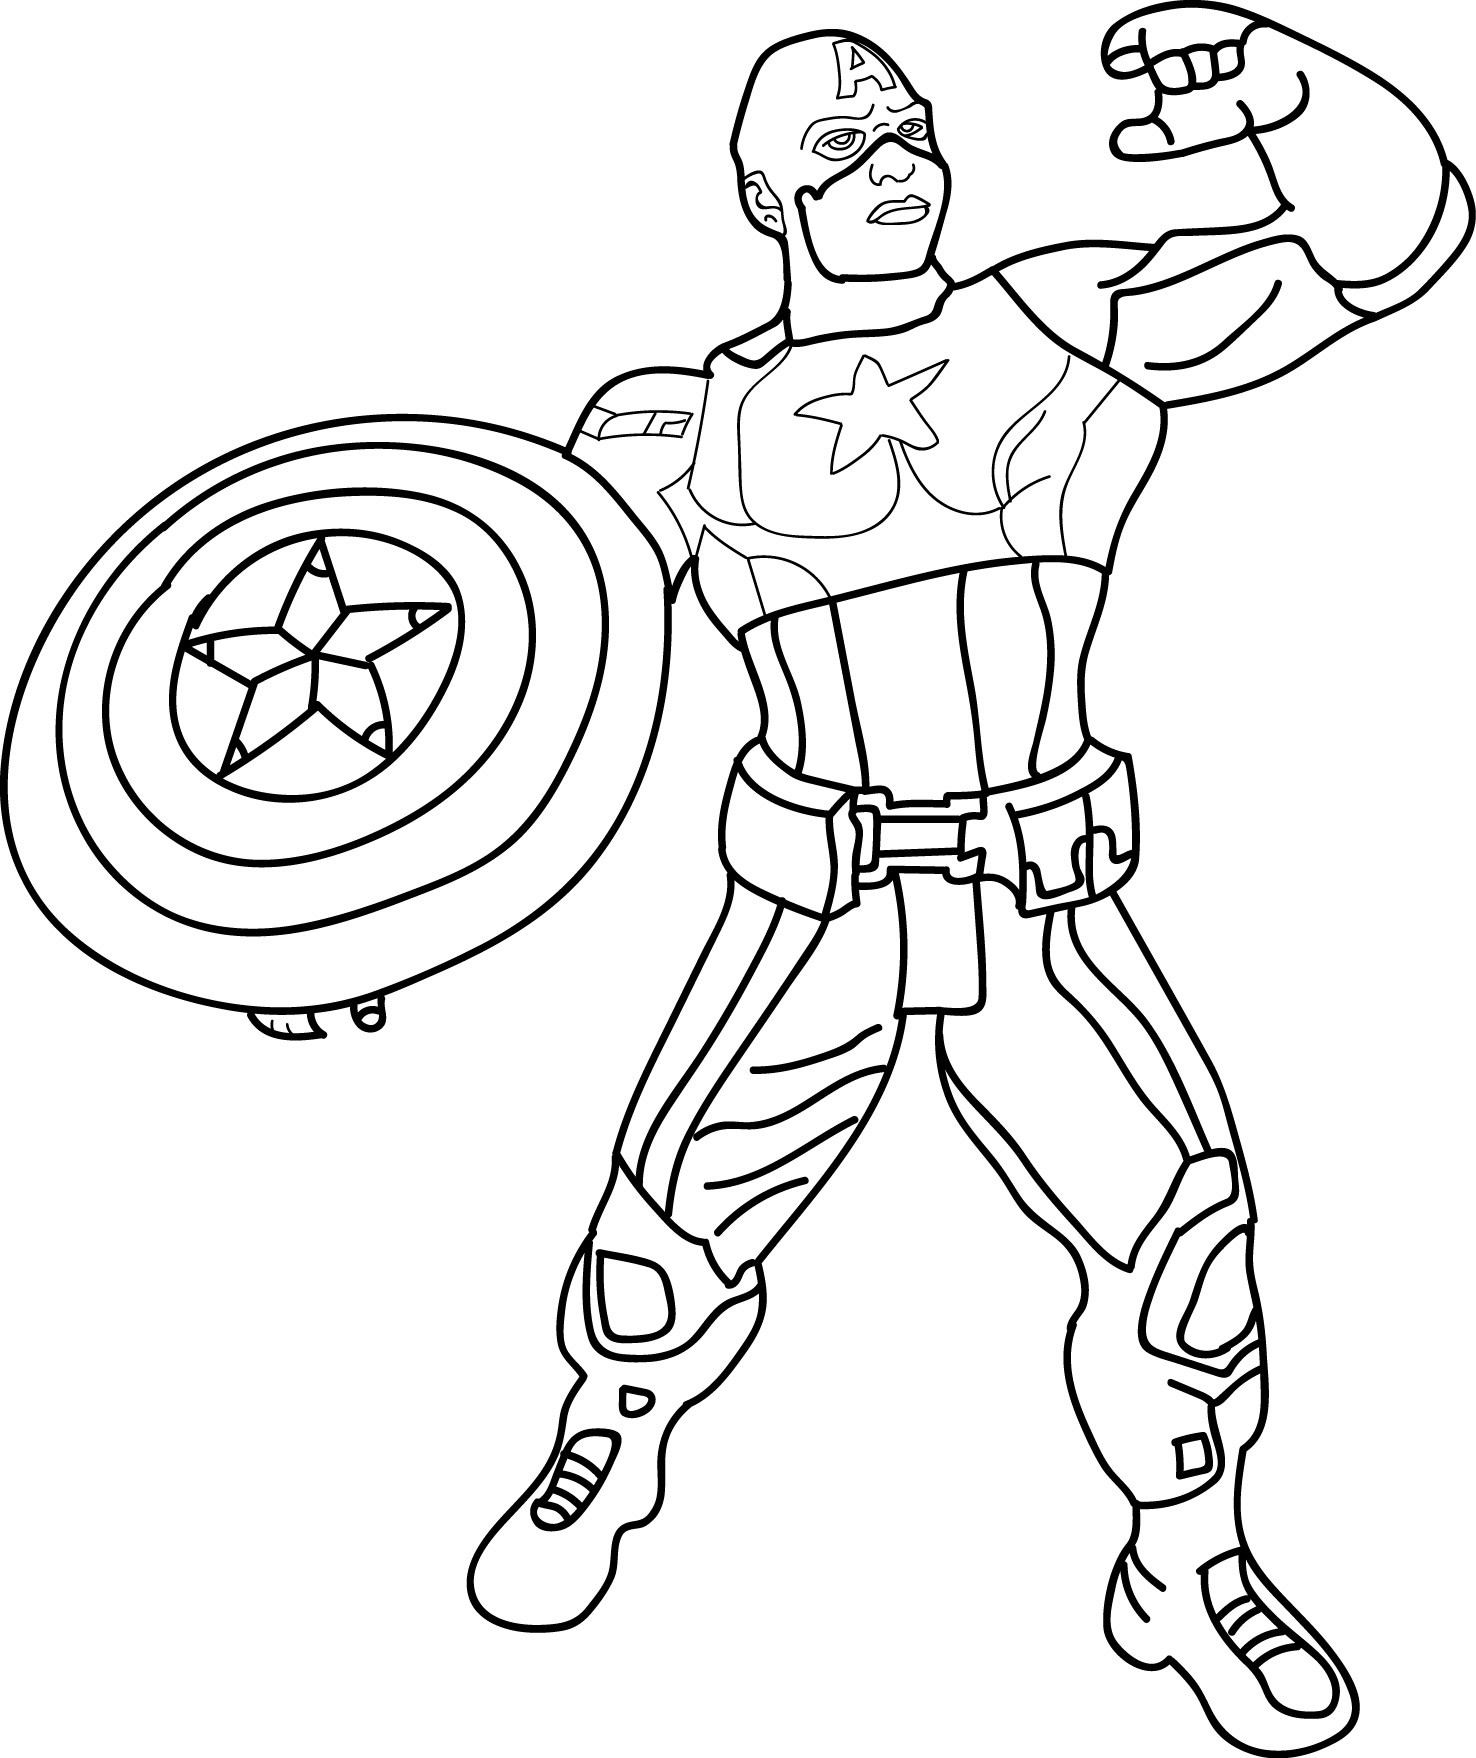 1476x1758 Engaging Captain America Coloring Pages Preschool For Tiny